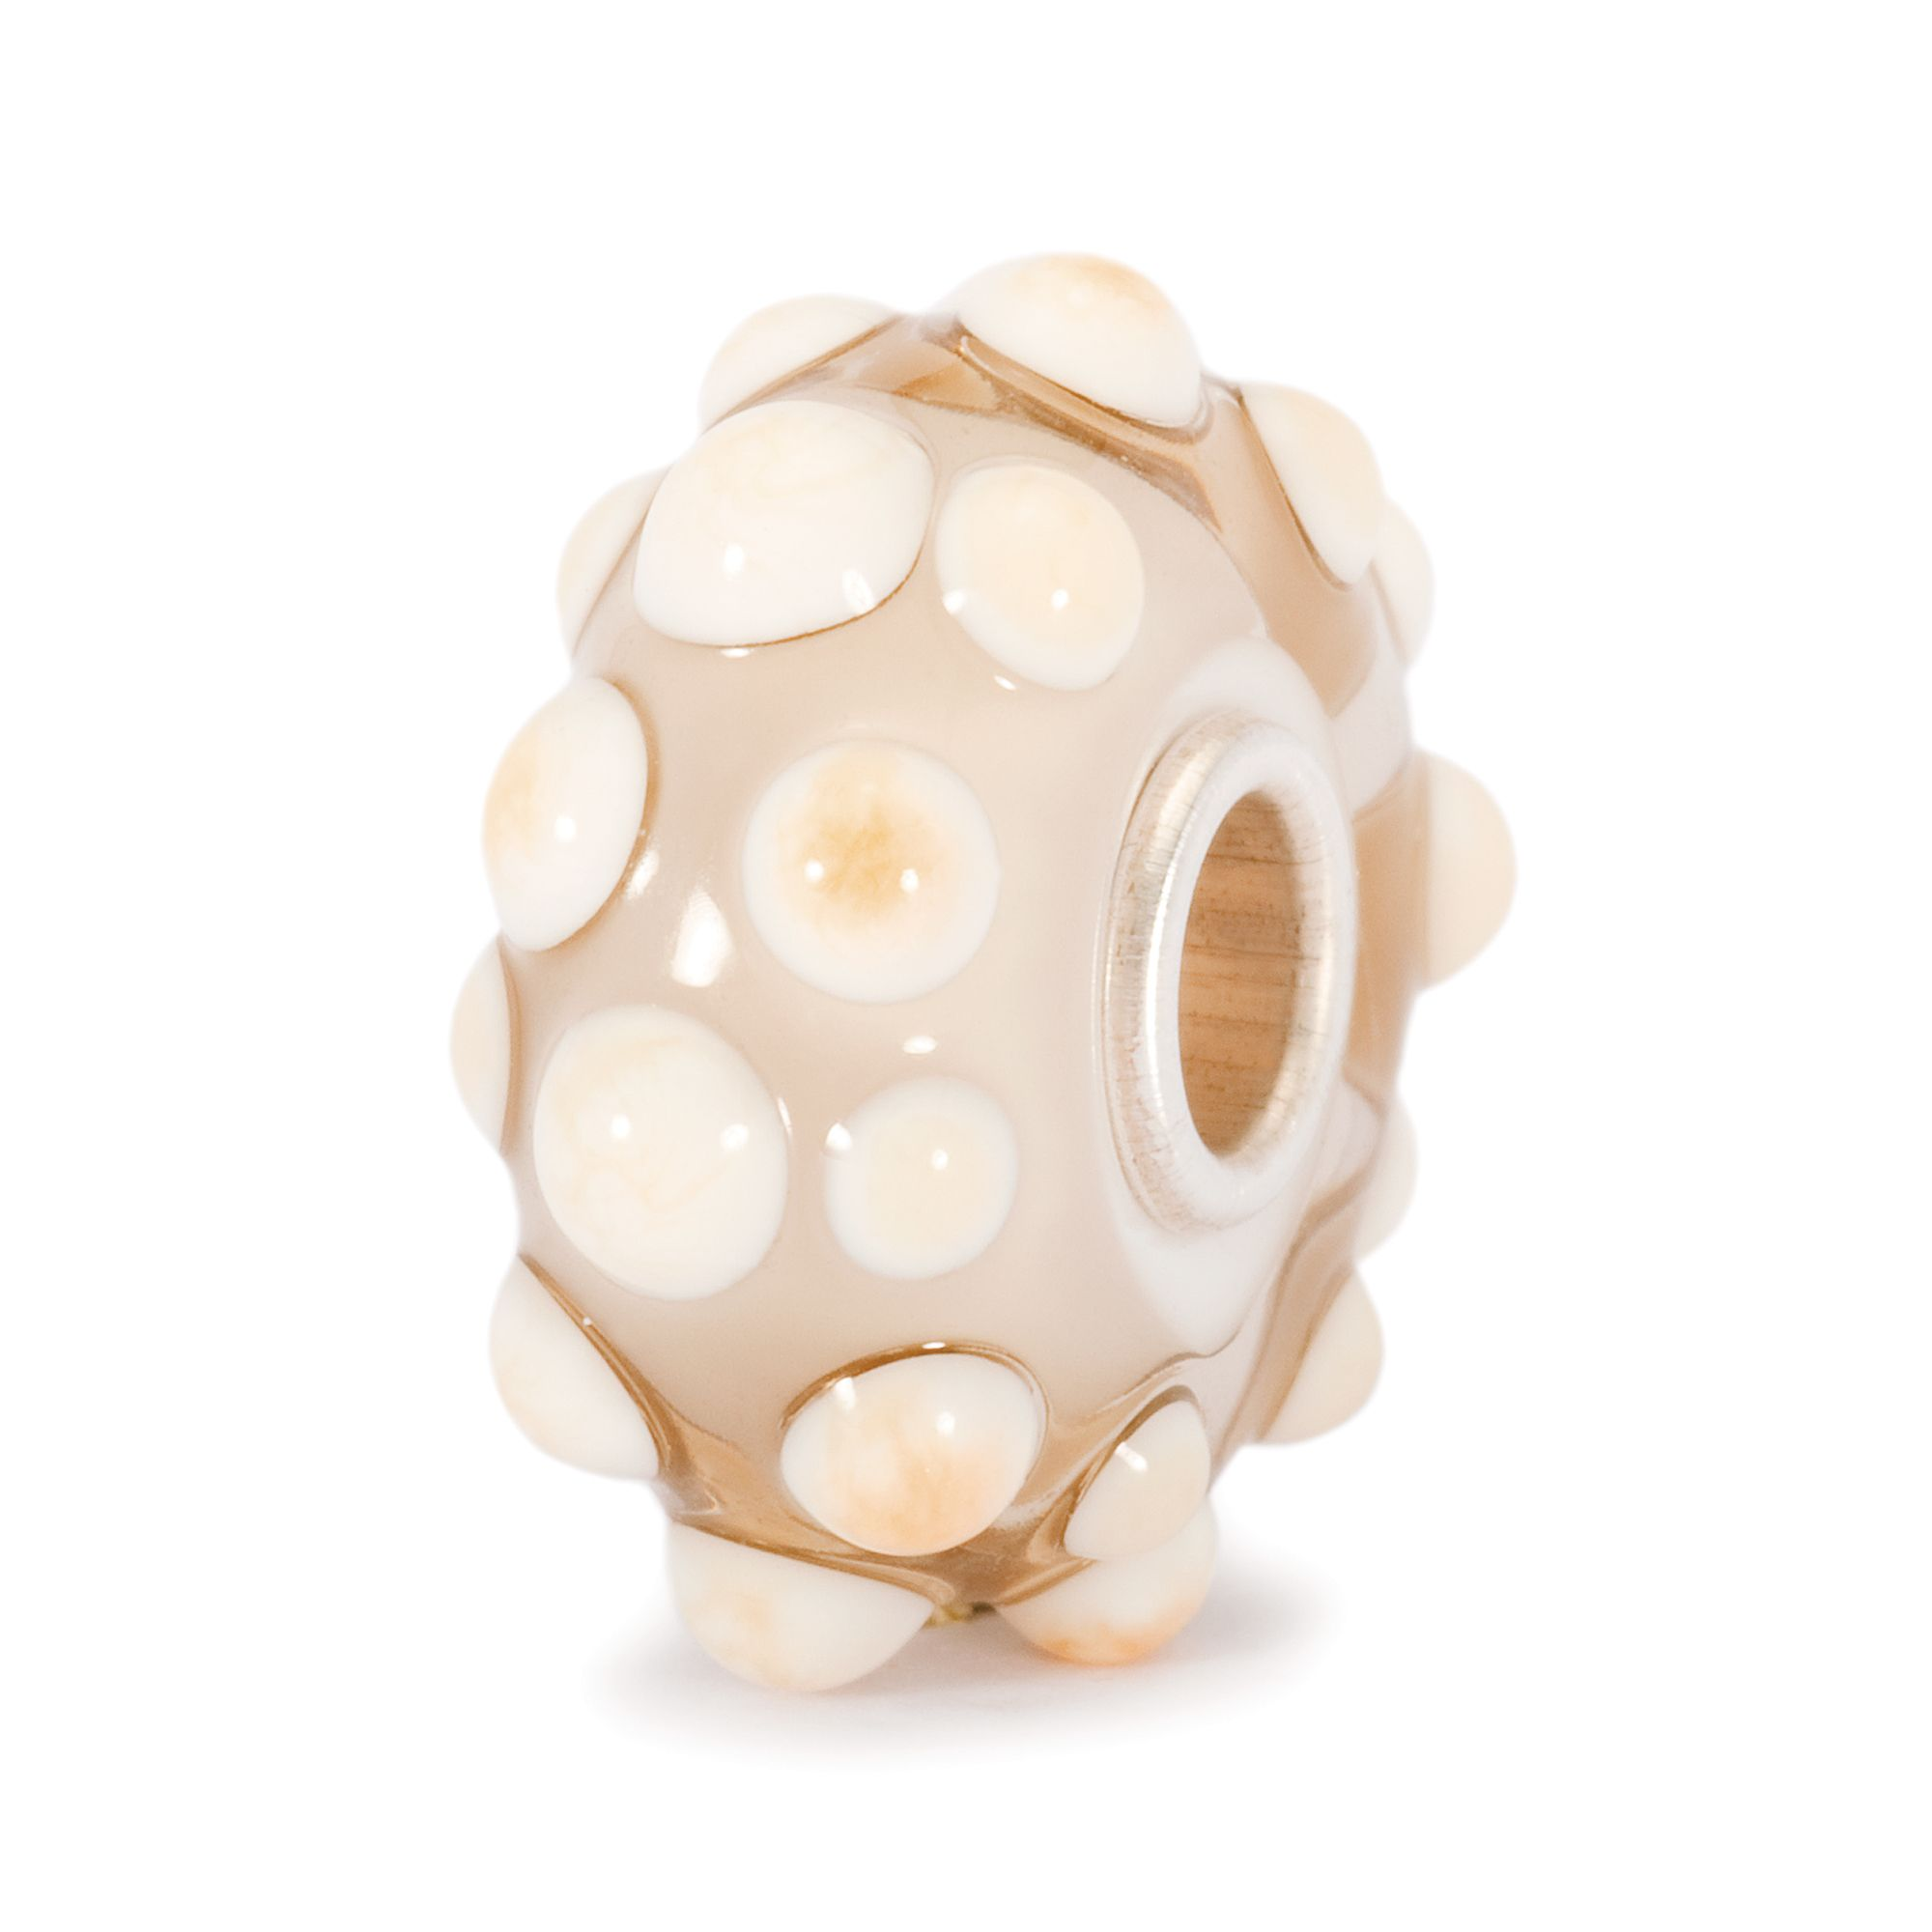 Shell glass charm bead